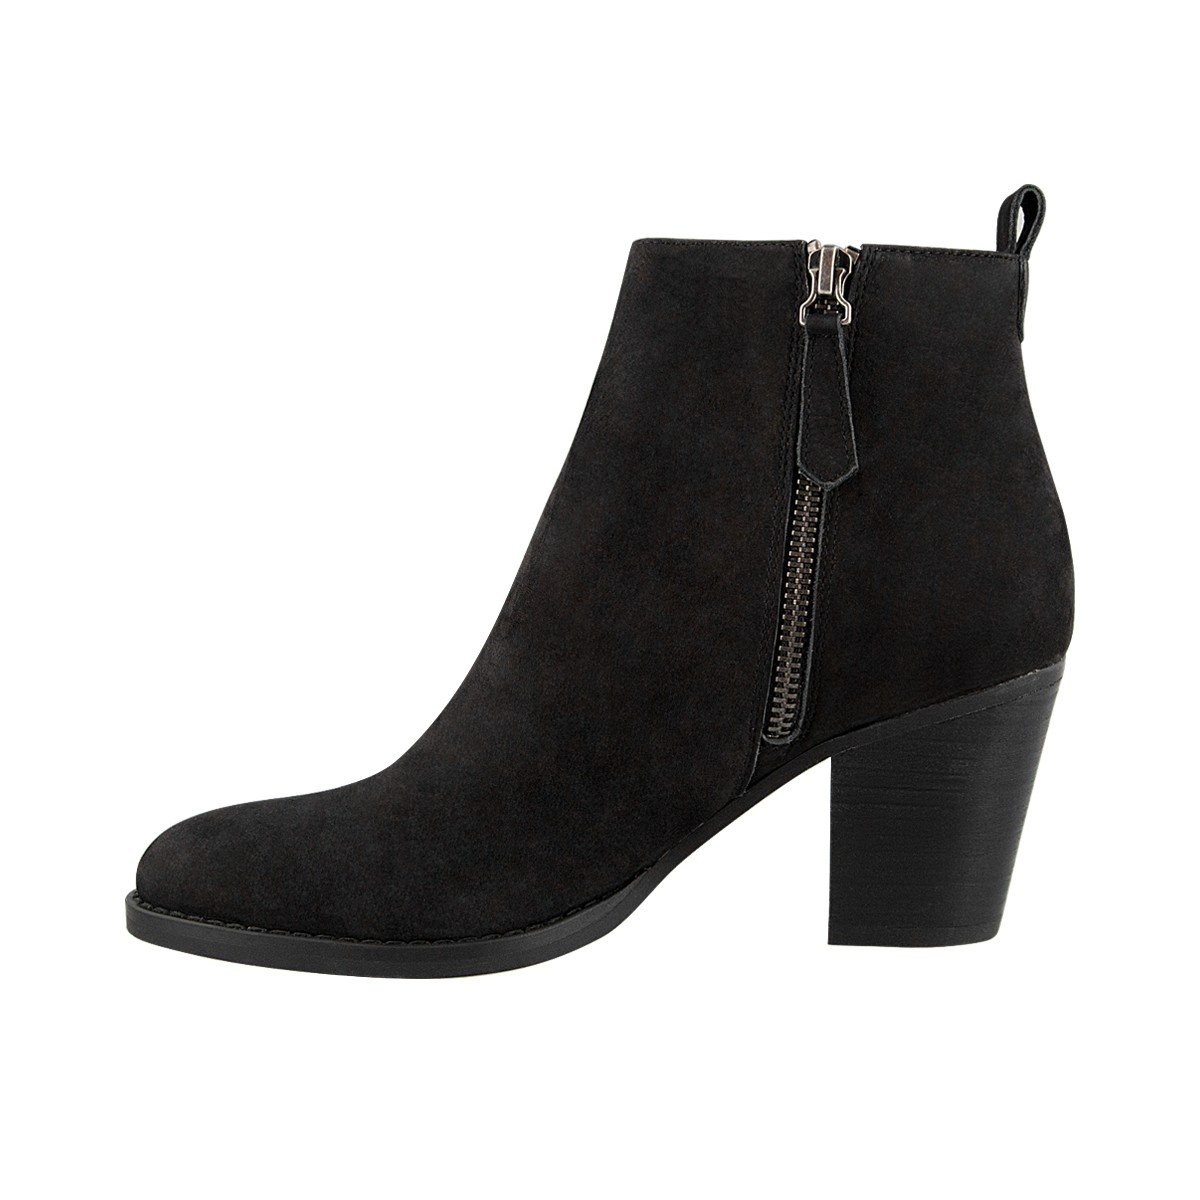 Tony Bianco Lance Ankle Boots Womens Boots with Chunky Woodstack Heels and Round Toe